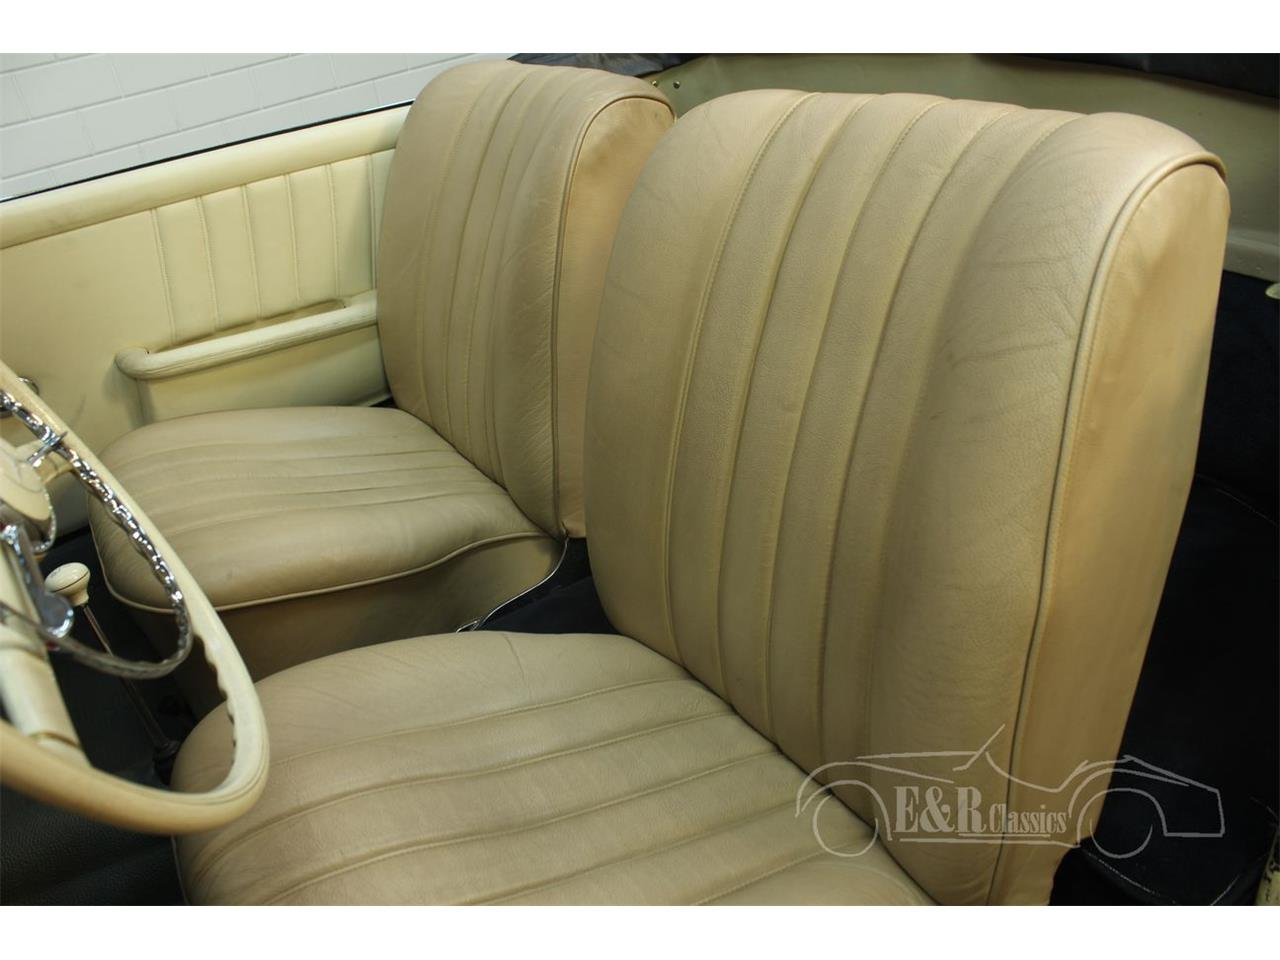 Large Picture of '56 Mercedes-Benz 190SL located in - Keine Angabe - - $118,450.00 - PH44